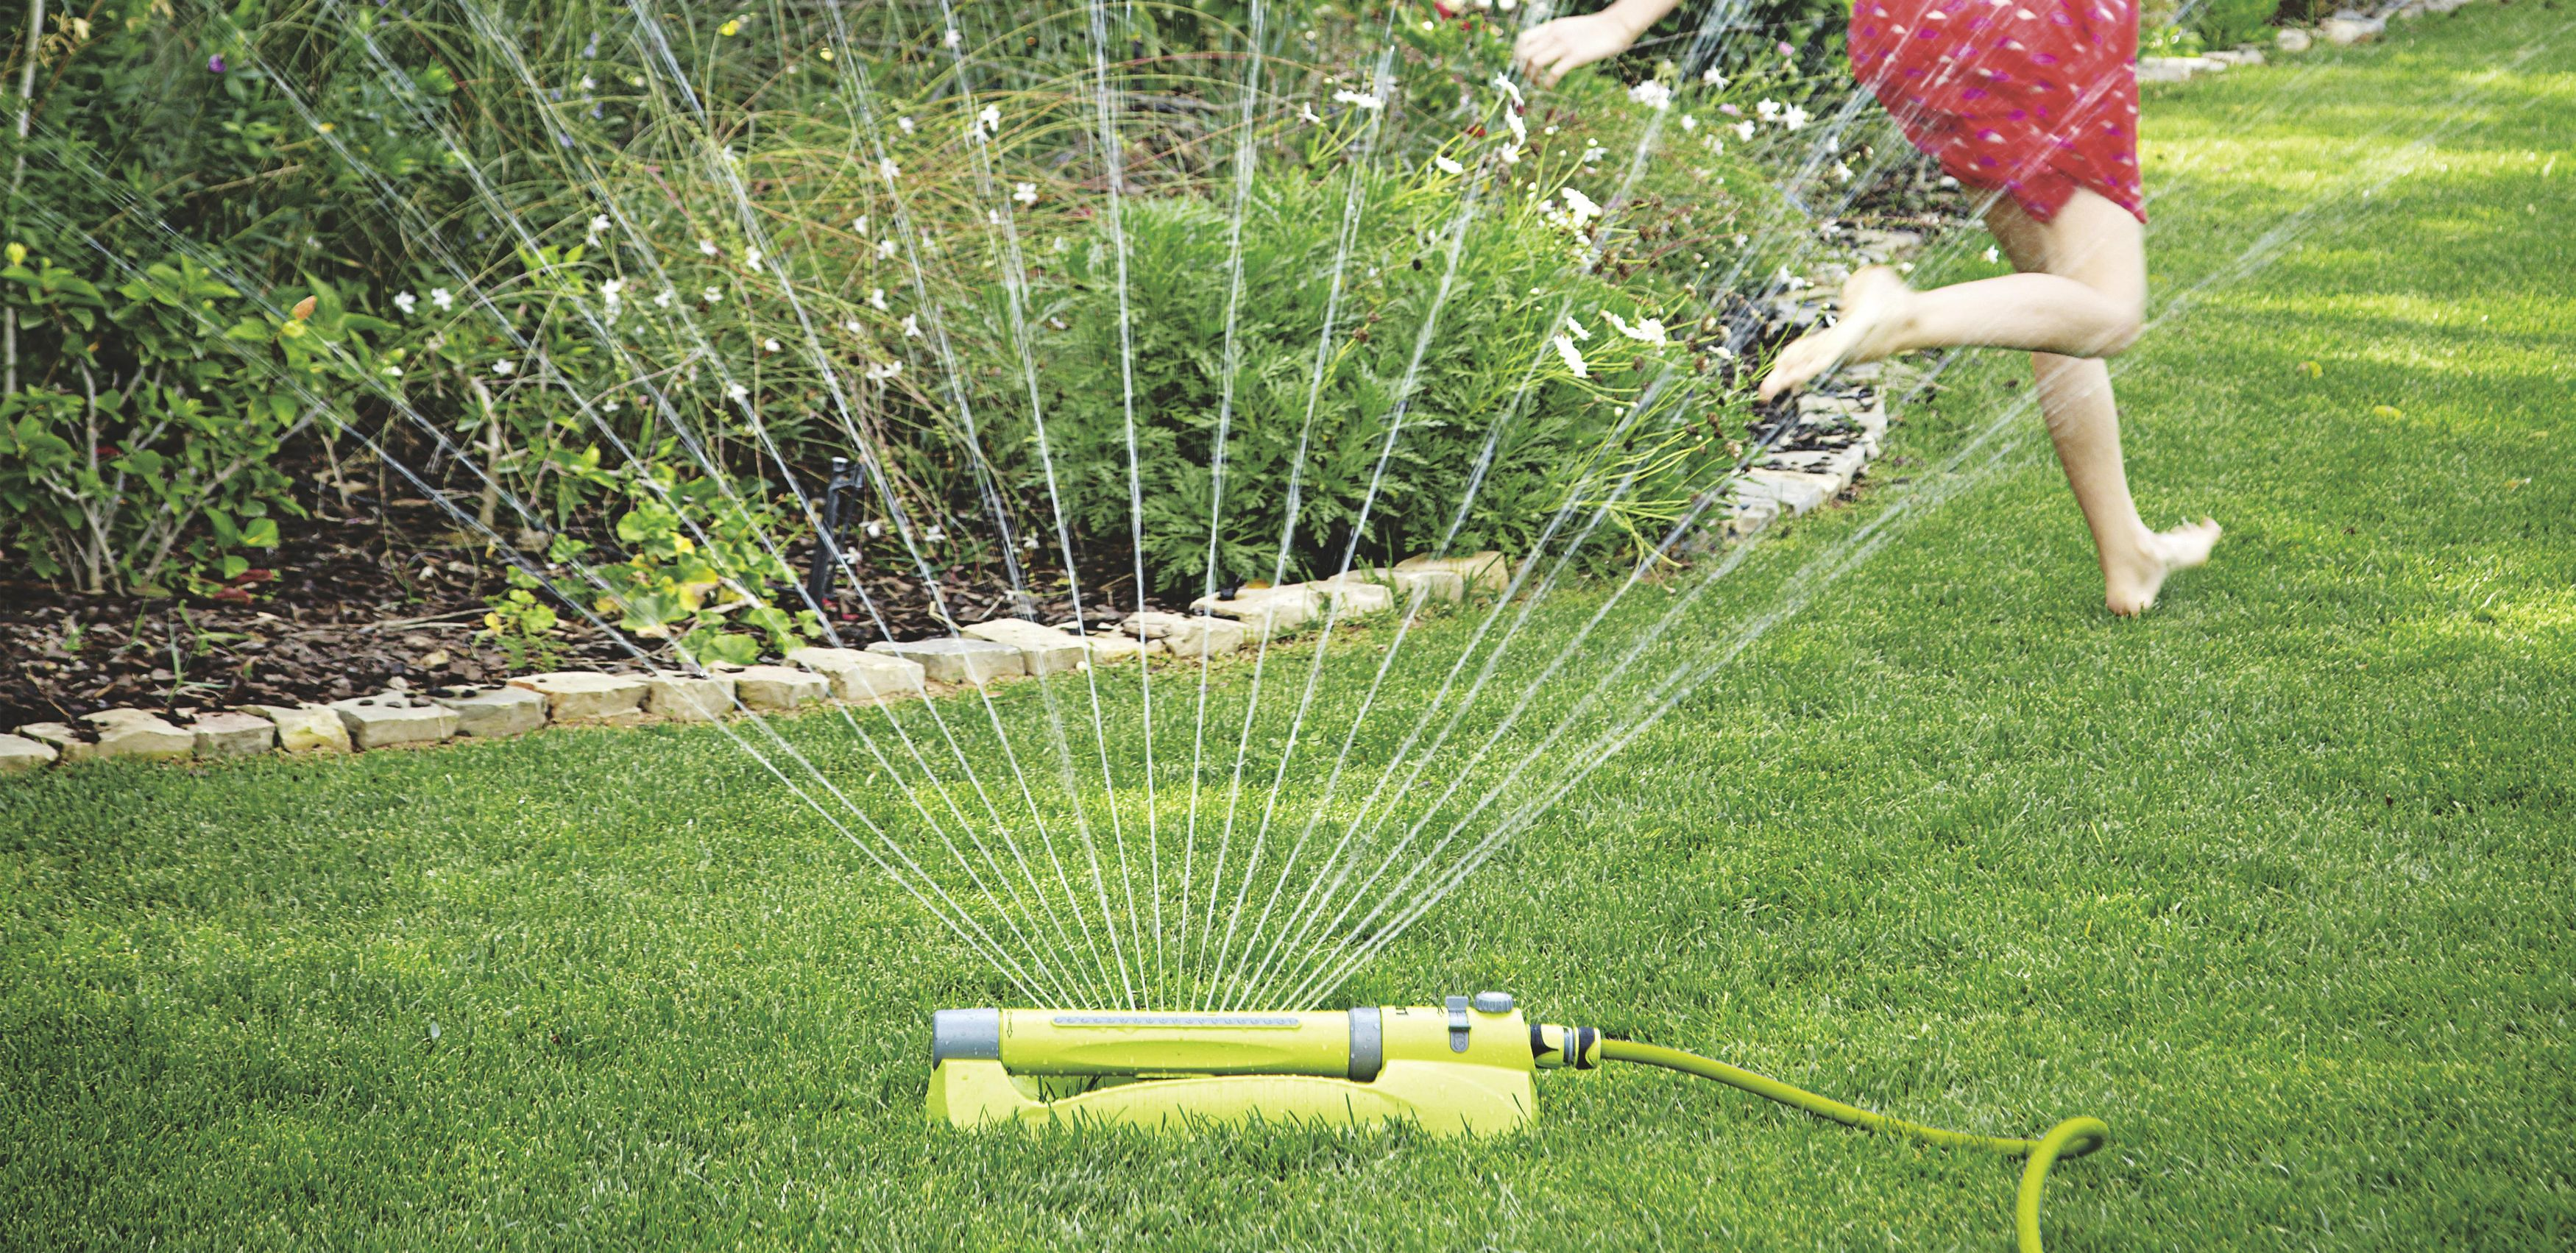 5 Best Sprinklers for a Small Lawn - Reviews and Buying Guide